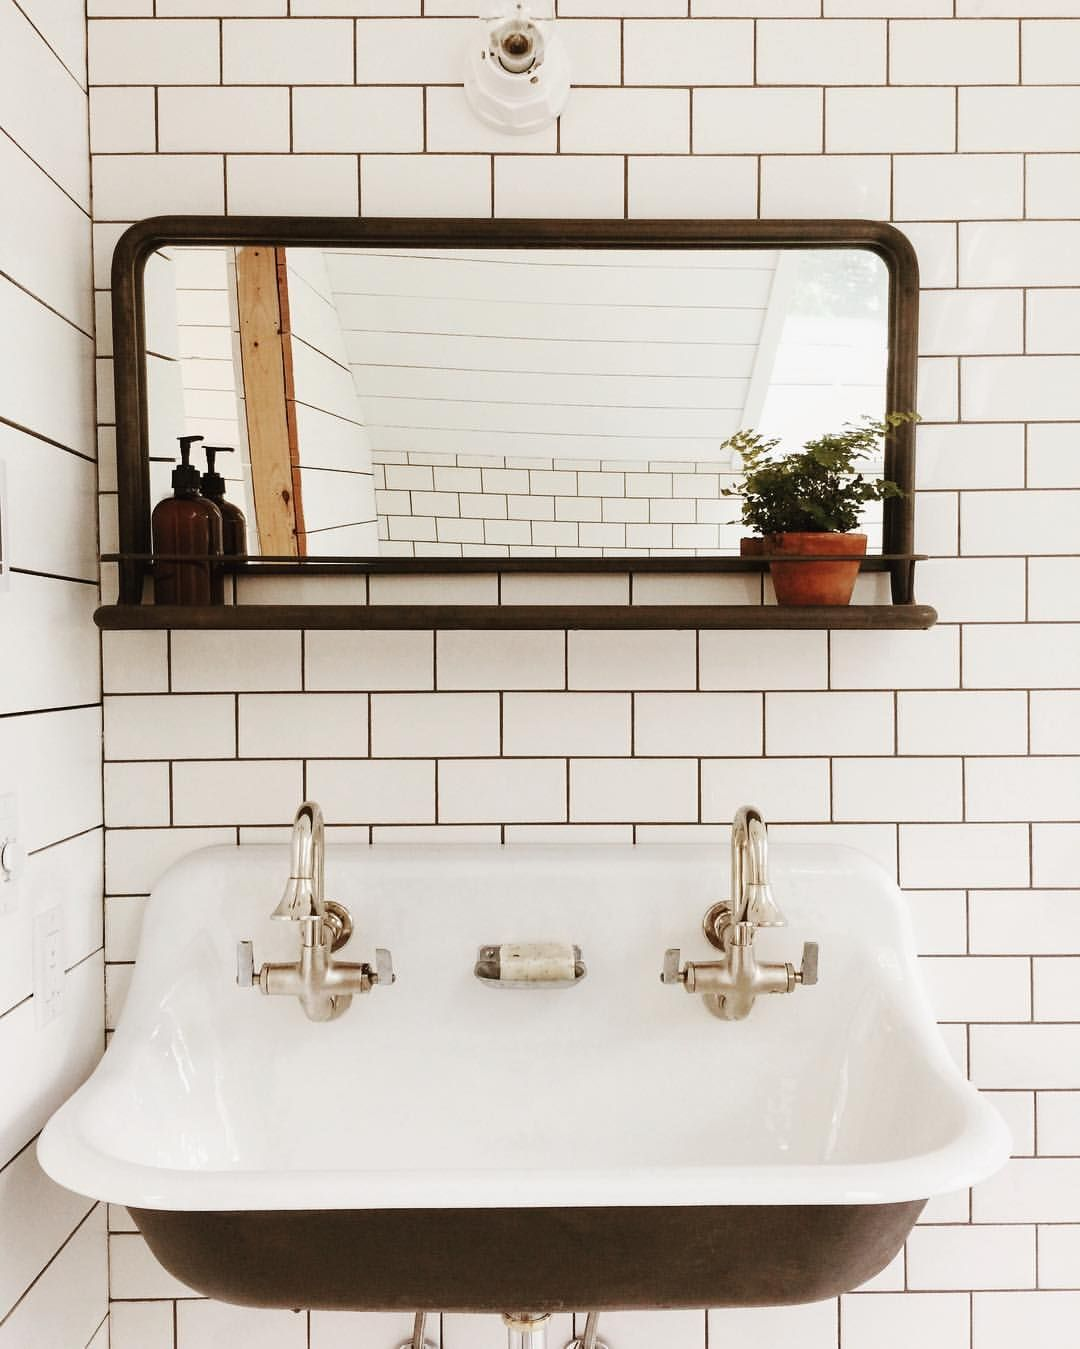 Amazon Pharmacy Mirror Subway Tile Kohler Brockway Trough Sink Vintage Bathroom Stylish Bathroom Mirror Decal